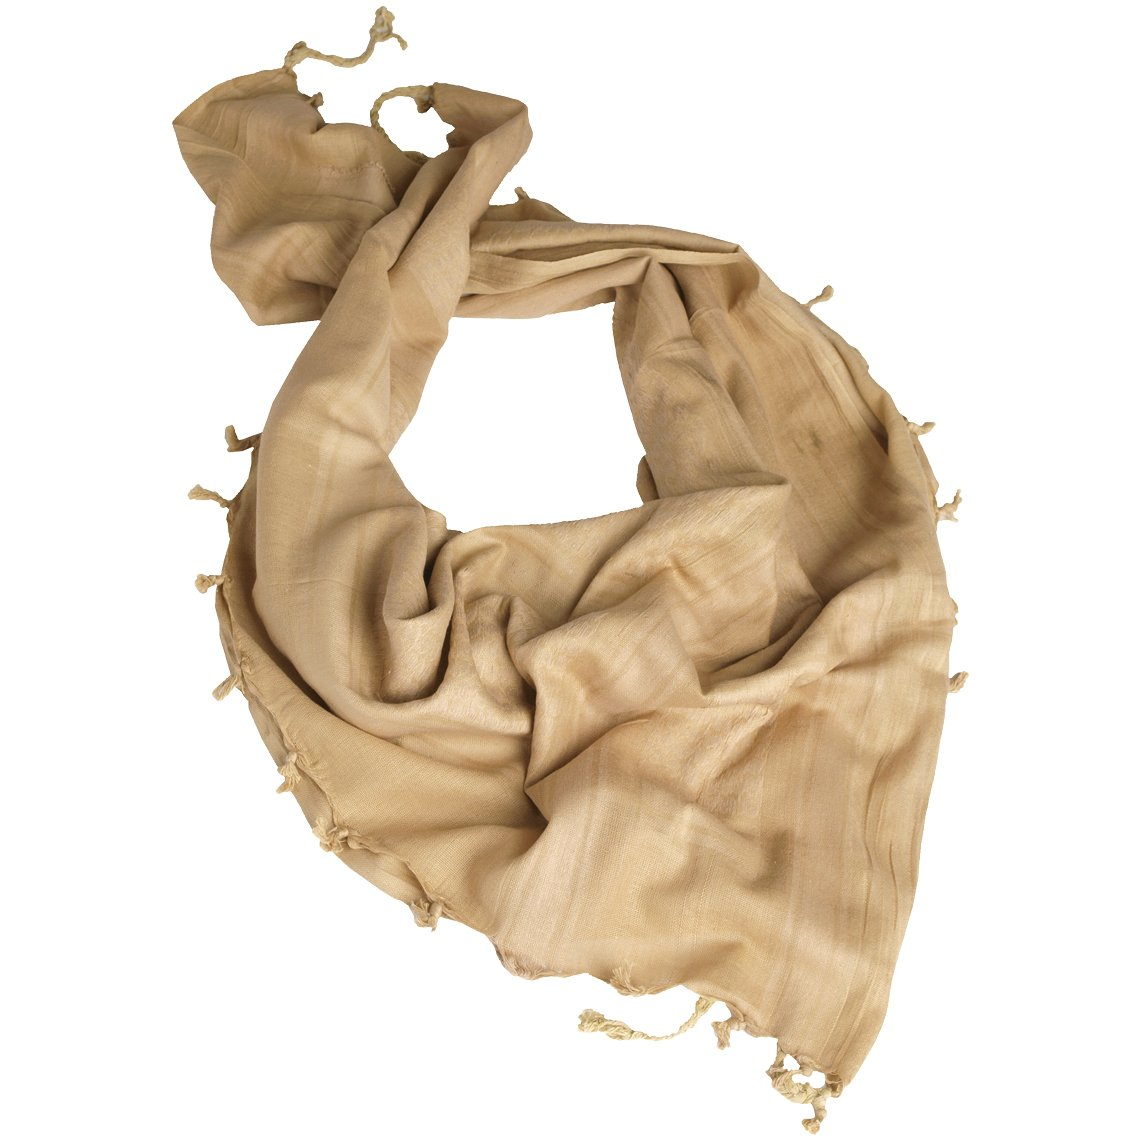 Military Shemagh Tactical Scarf Army Shermag Head Wrap Arab Keffiyeh Coyote  Tan  Amazon.co.uk  Clothing 81acbf21564